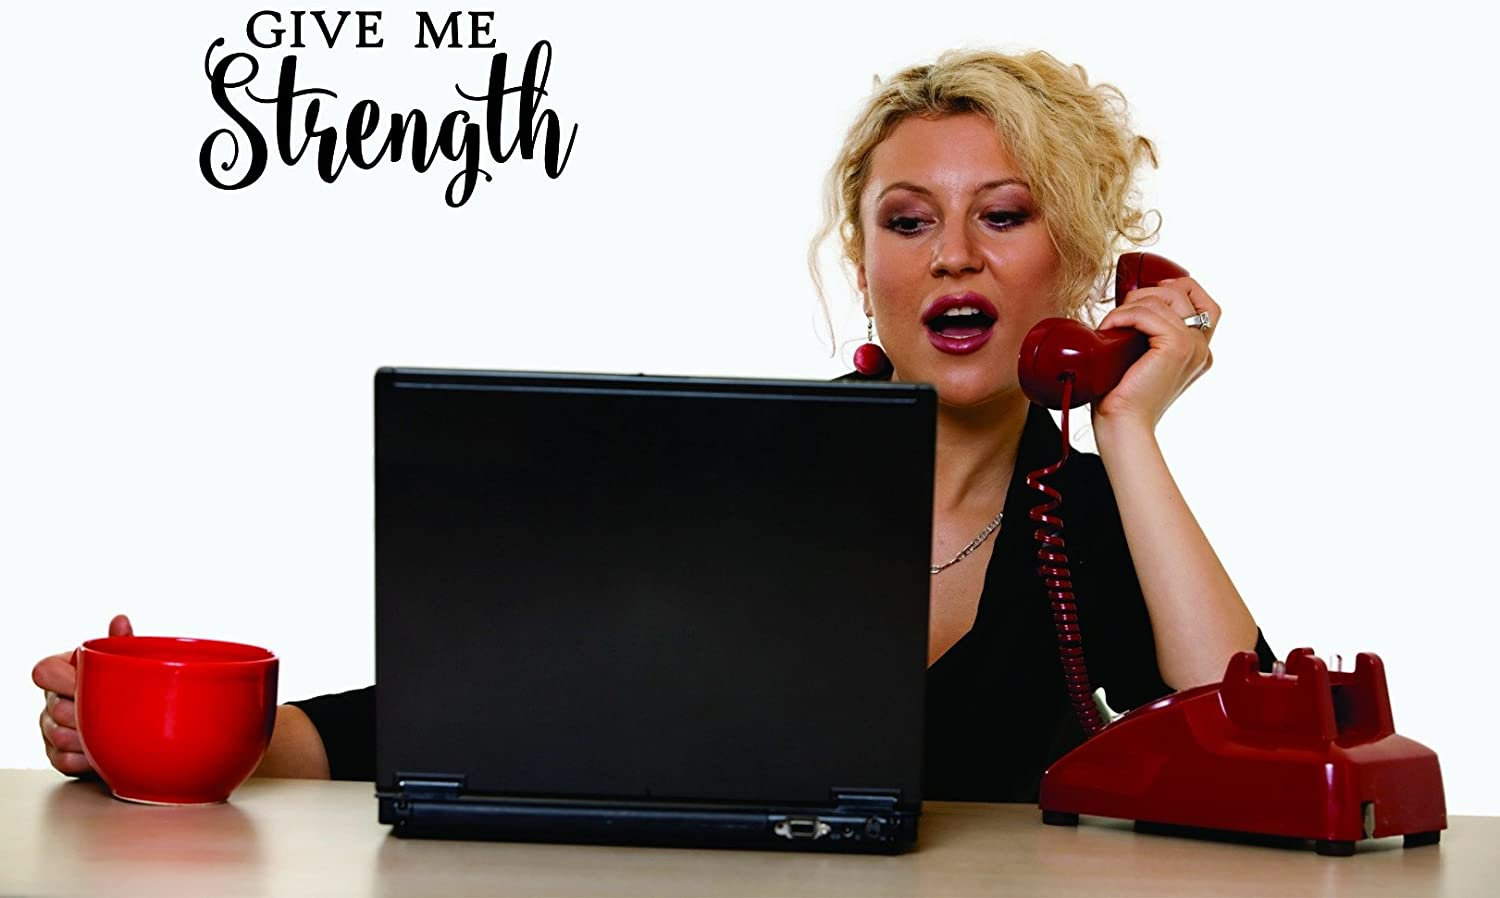 Design with Vinyl JER 1728 Very popular 3 Hot Ranking TOP9 Decals Me Strength Give New Wal